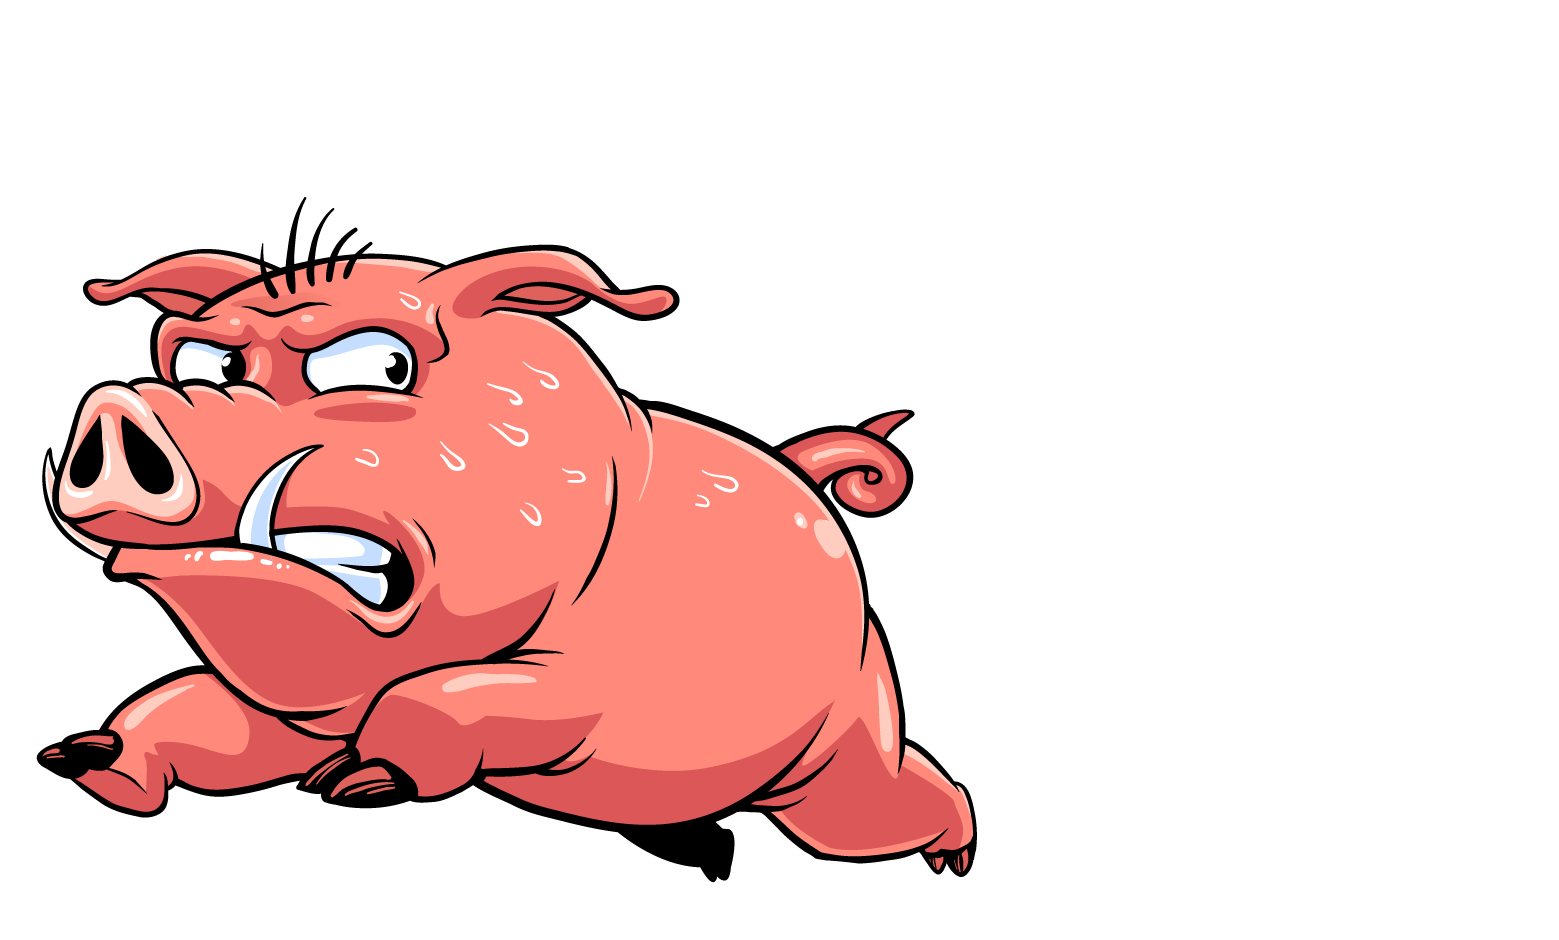 Rendy the run logo. Bacon clipart character transparent